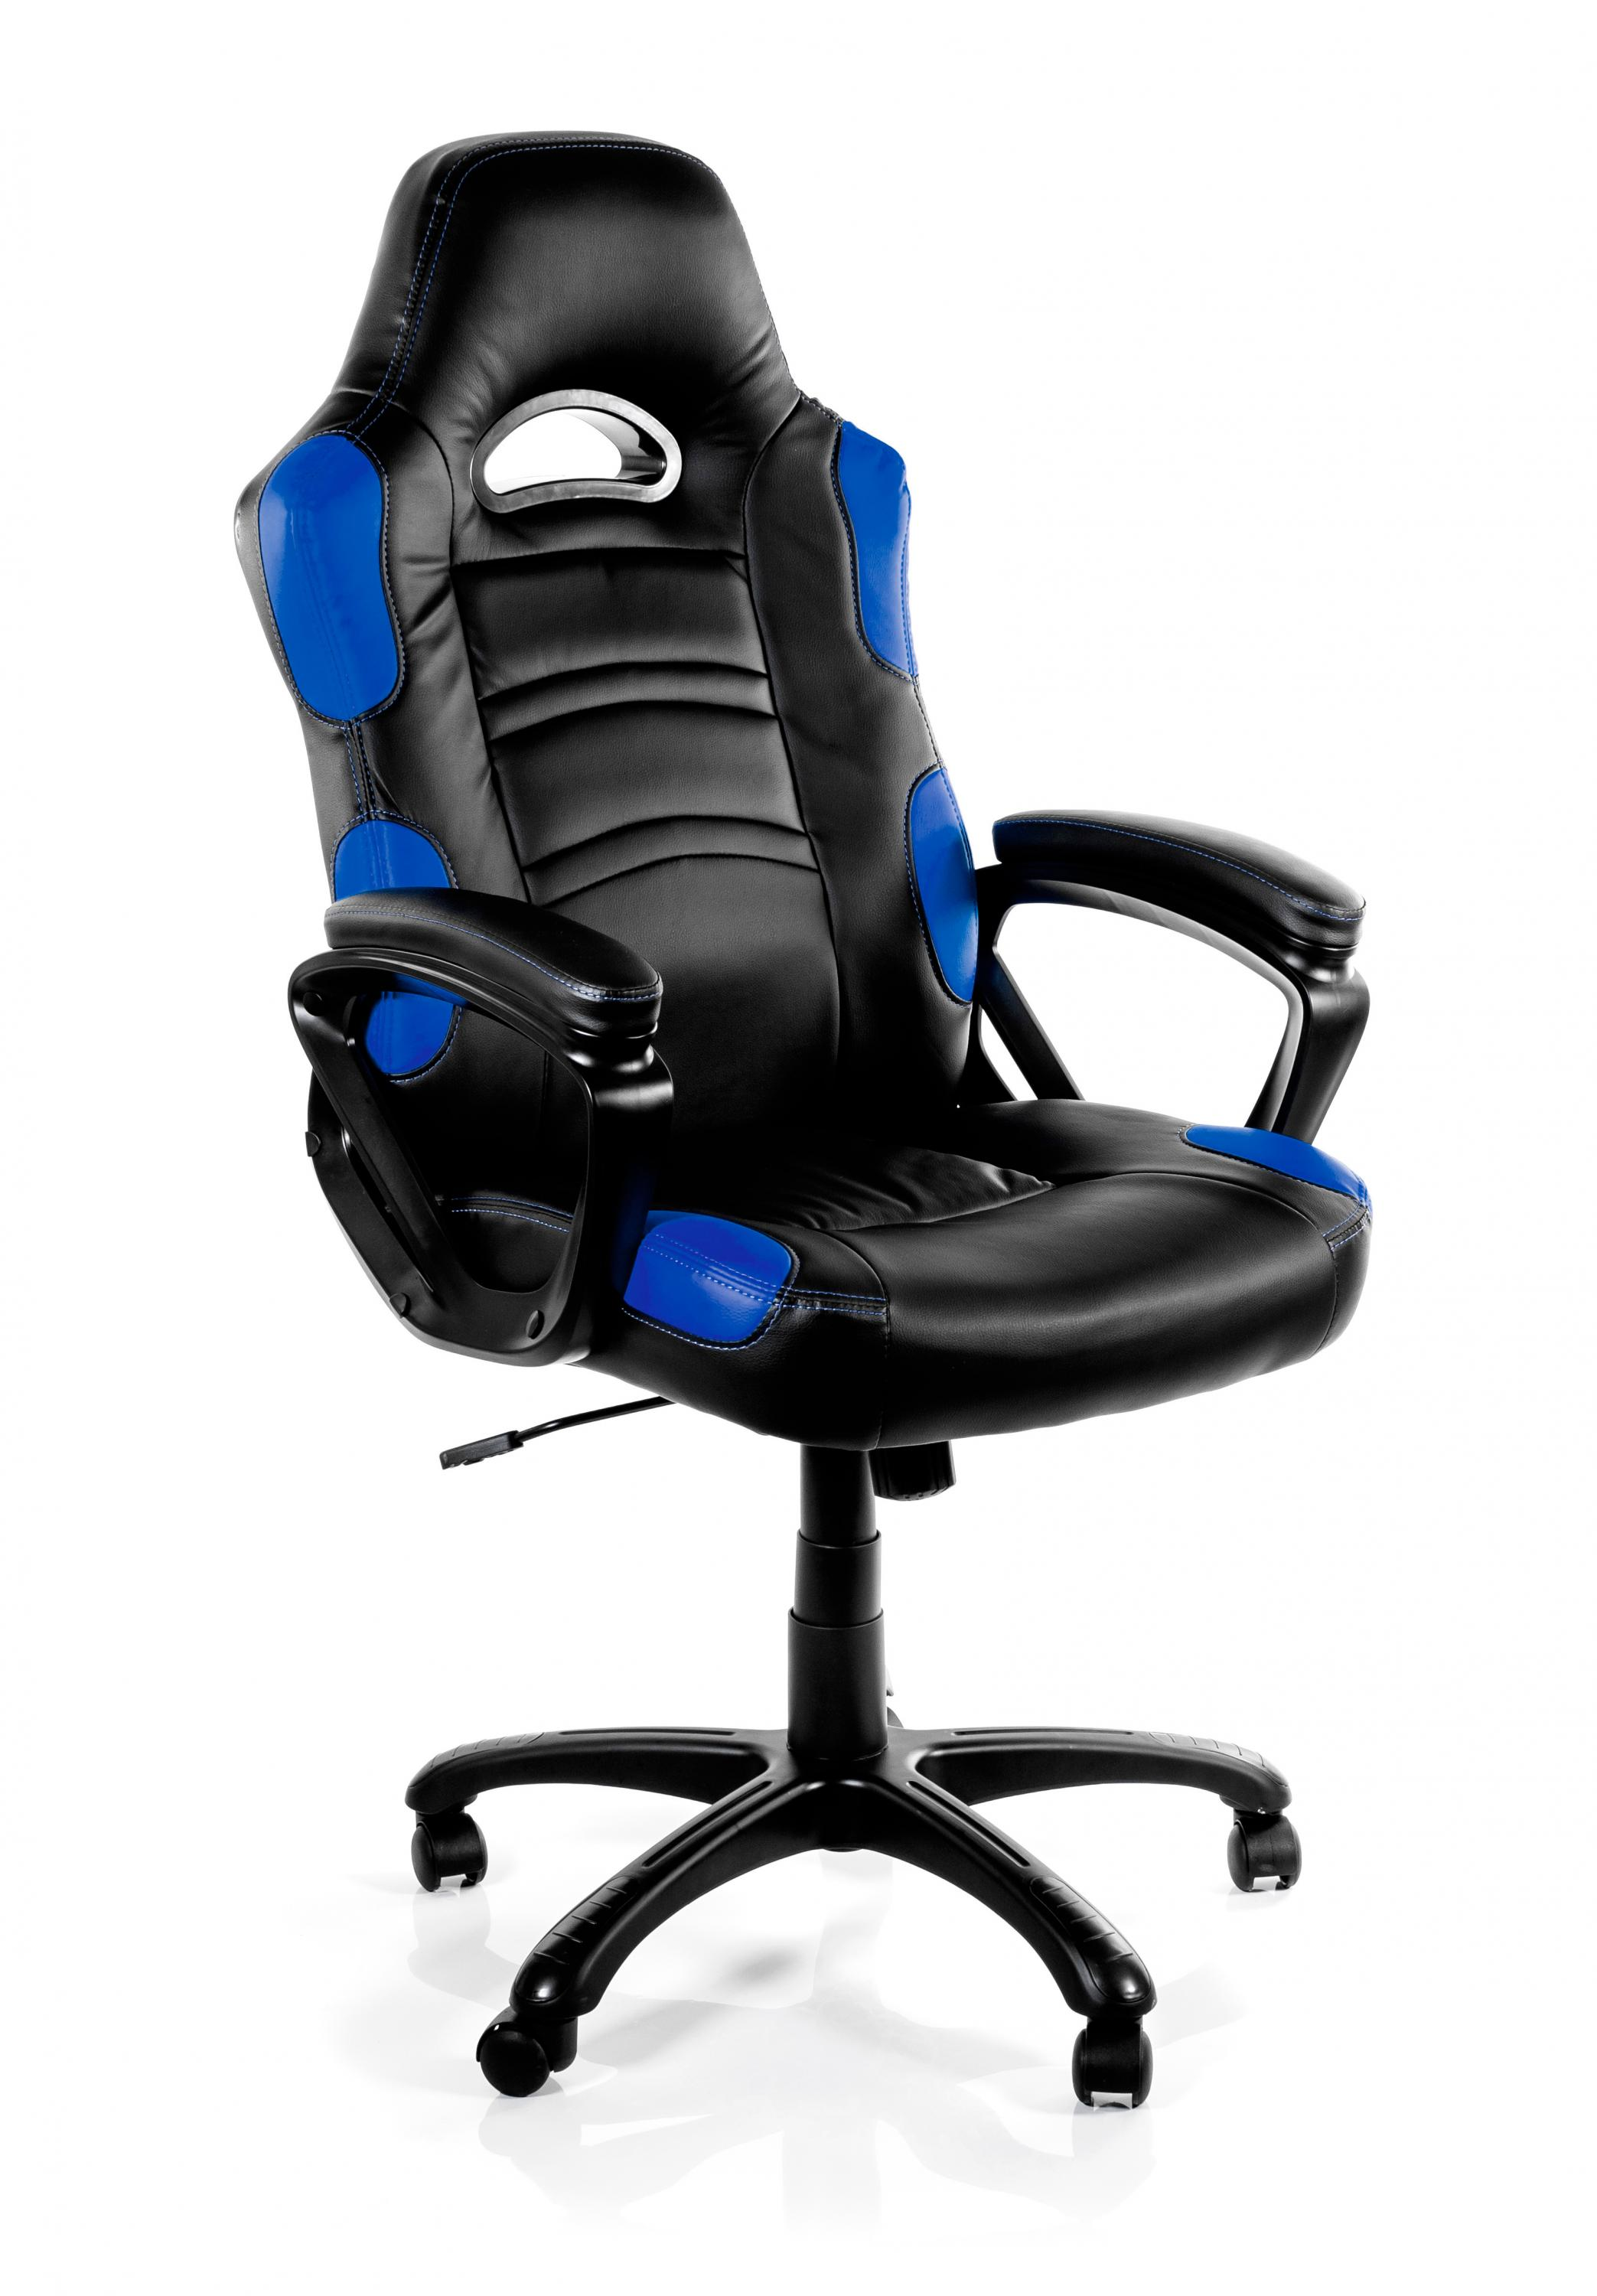 Gaiming Chair 10 Best Pc Gaming Chairs In 2015 Gamers Decide